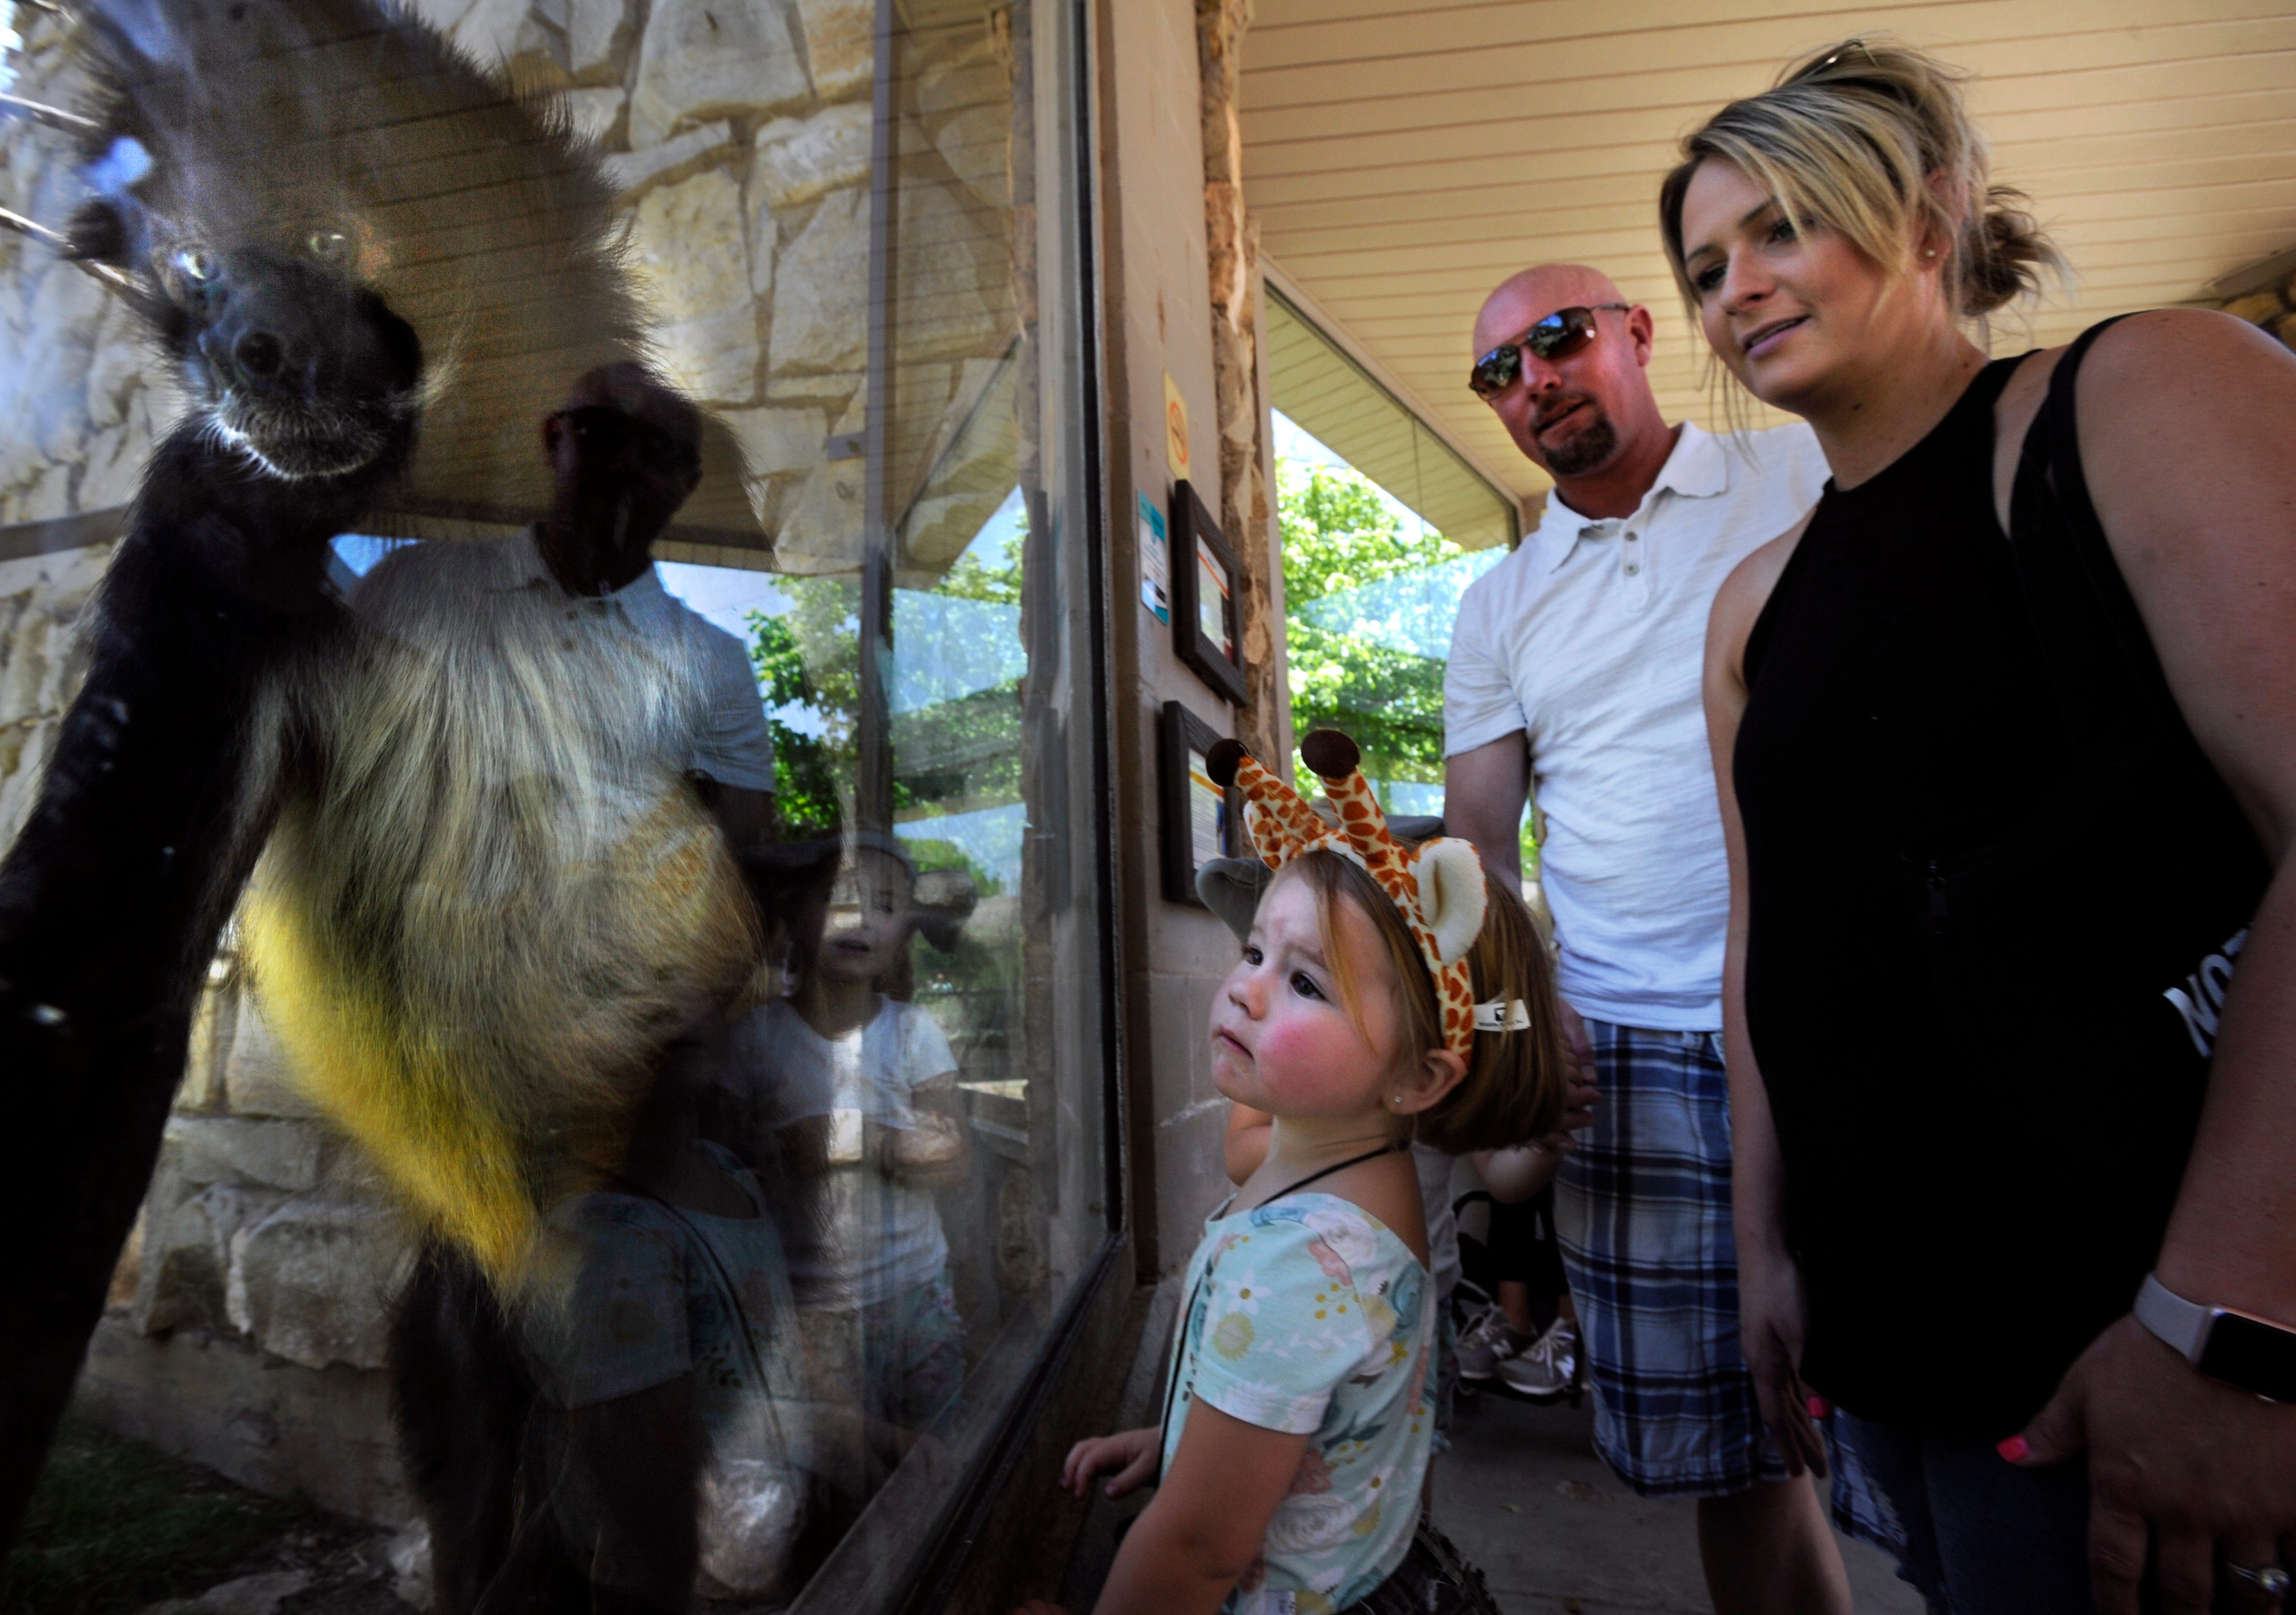 Brylee Smith, 3, Watches One Of The Spider Monkeys